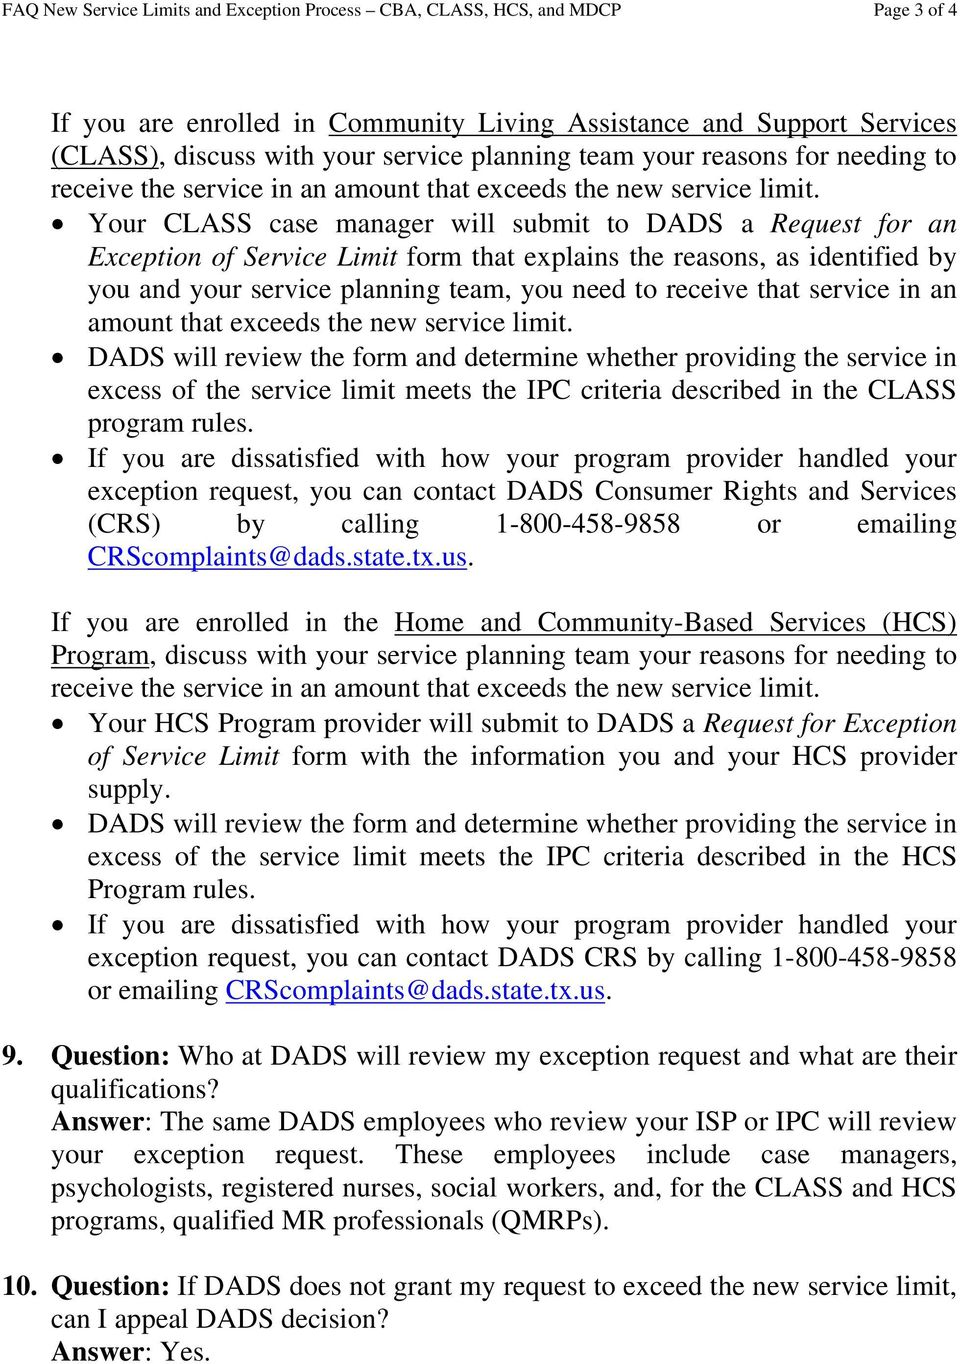 Your CLASS case manager will submit to DADS a Request for an Exception of Service Limit form that explains the reasons, as identified by you and your service planning team, you need to receive that